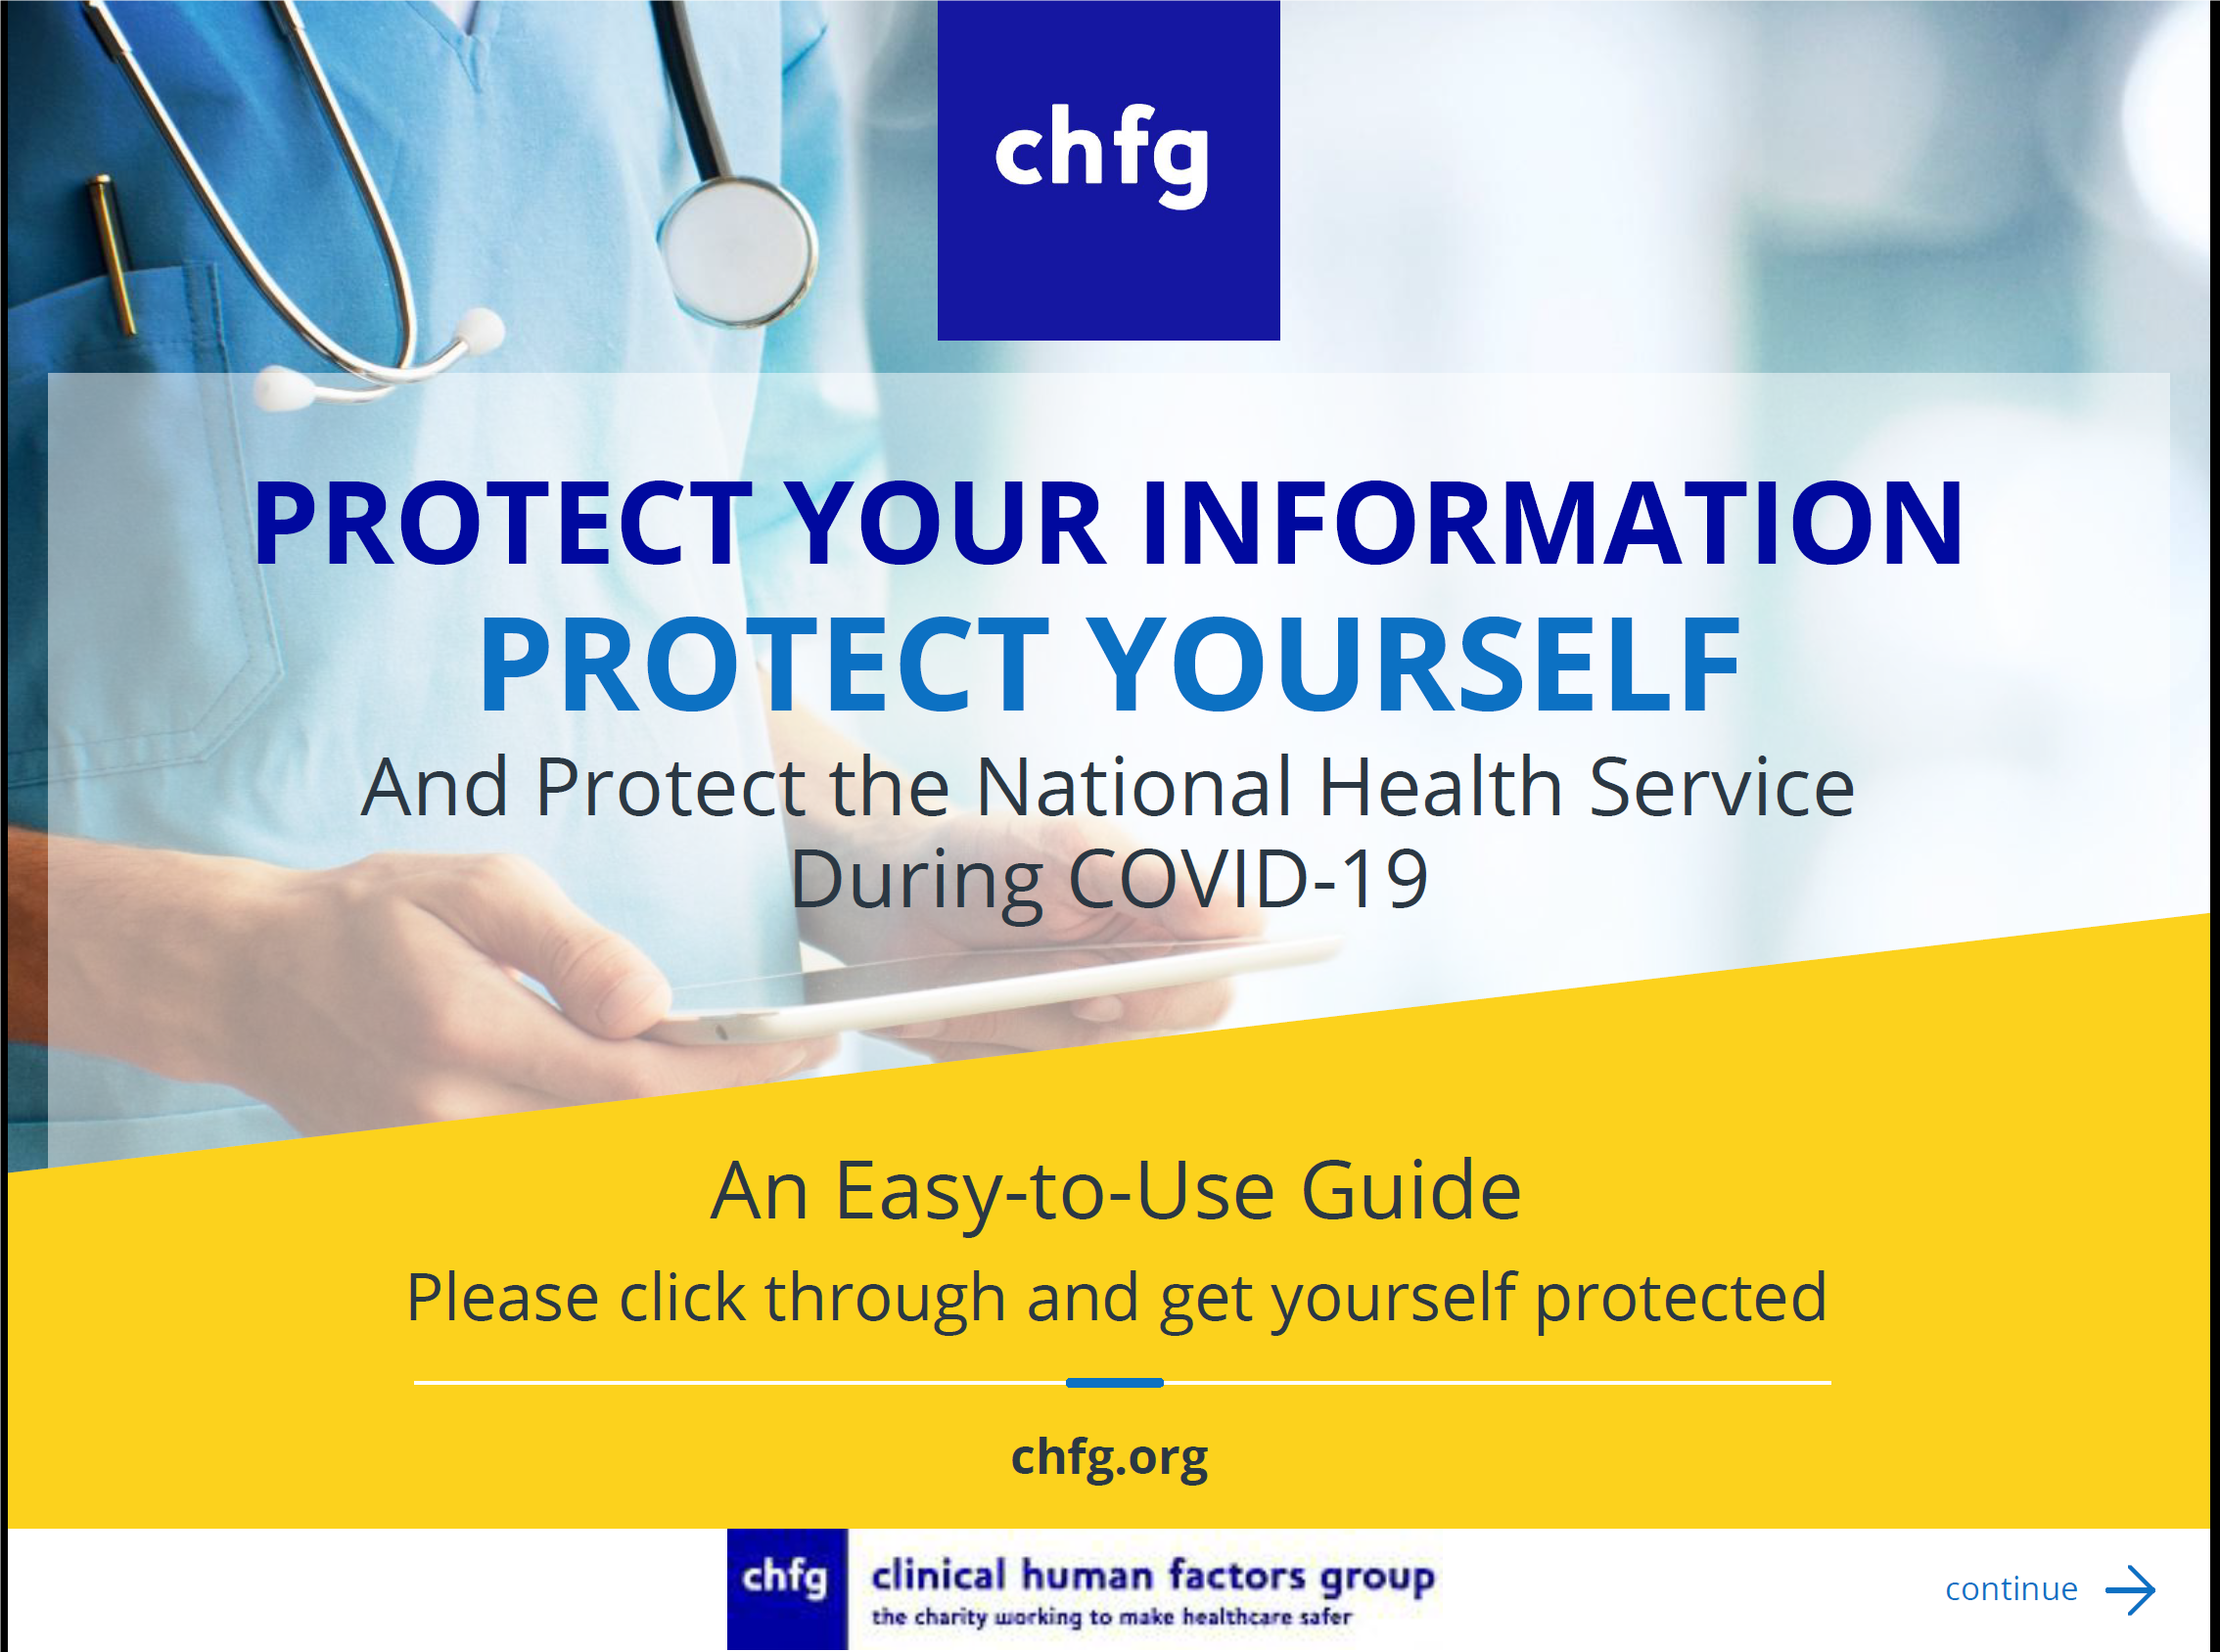 Protect yourself, protect the NHS